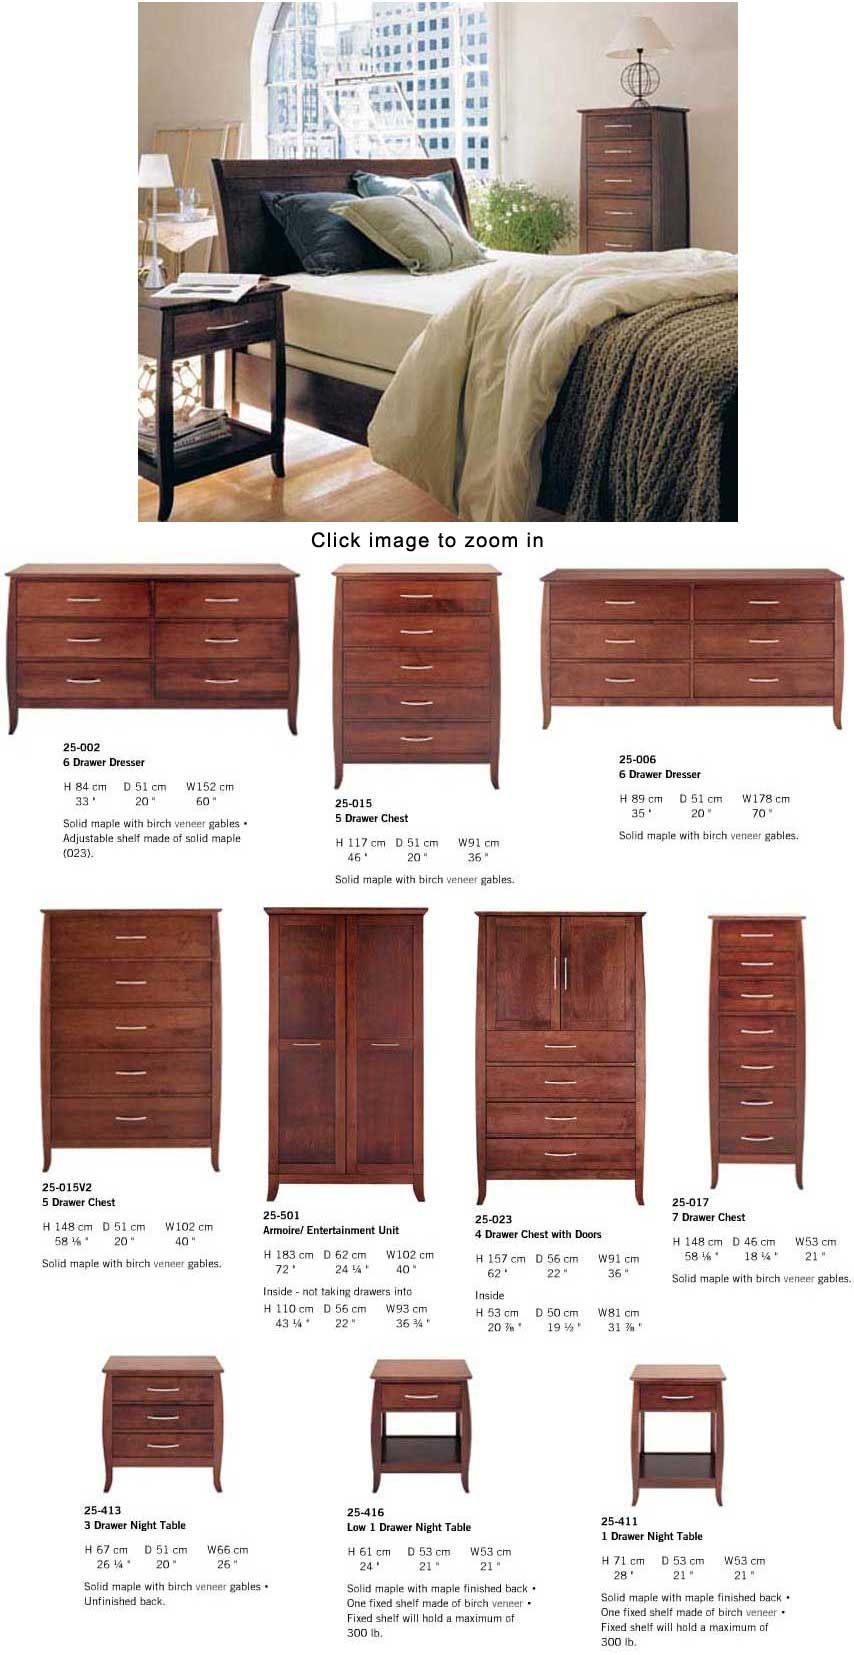 Walnut Canadian Baronet bedroom set we purchased about 13 years ago